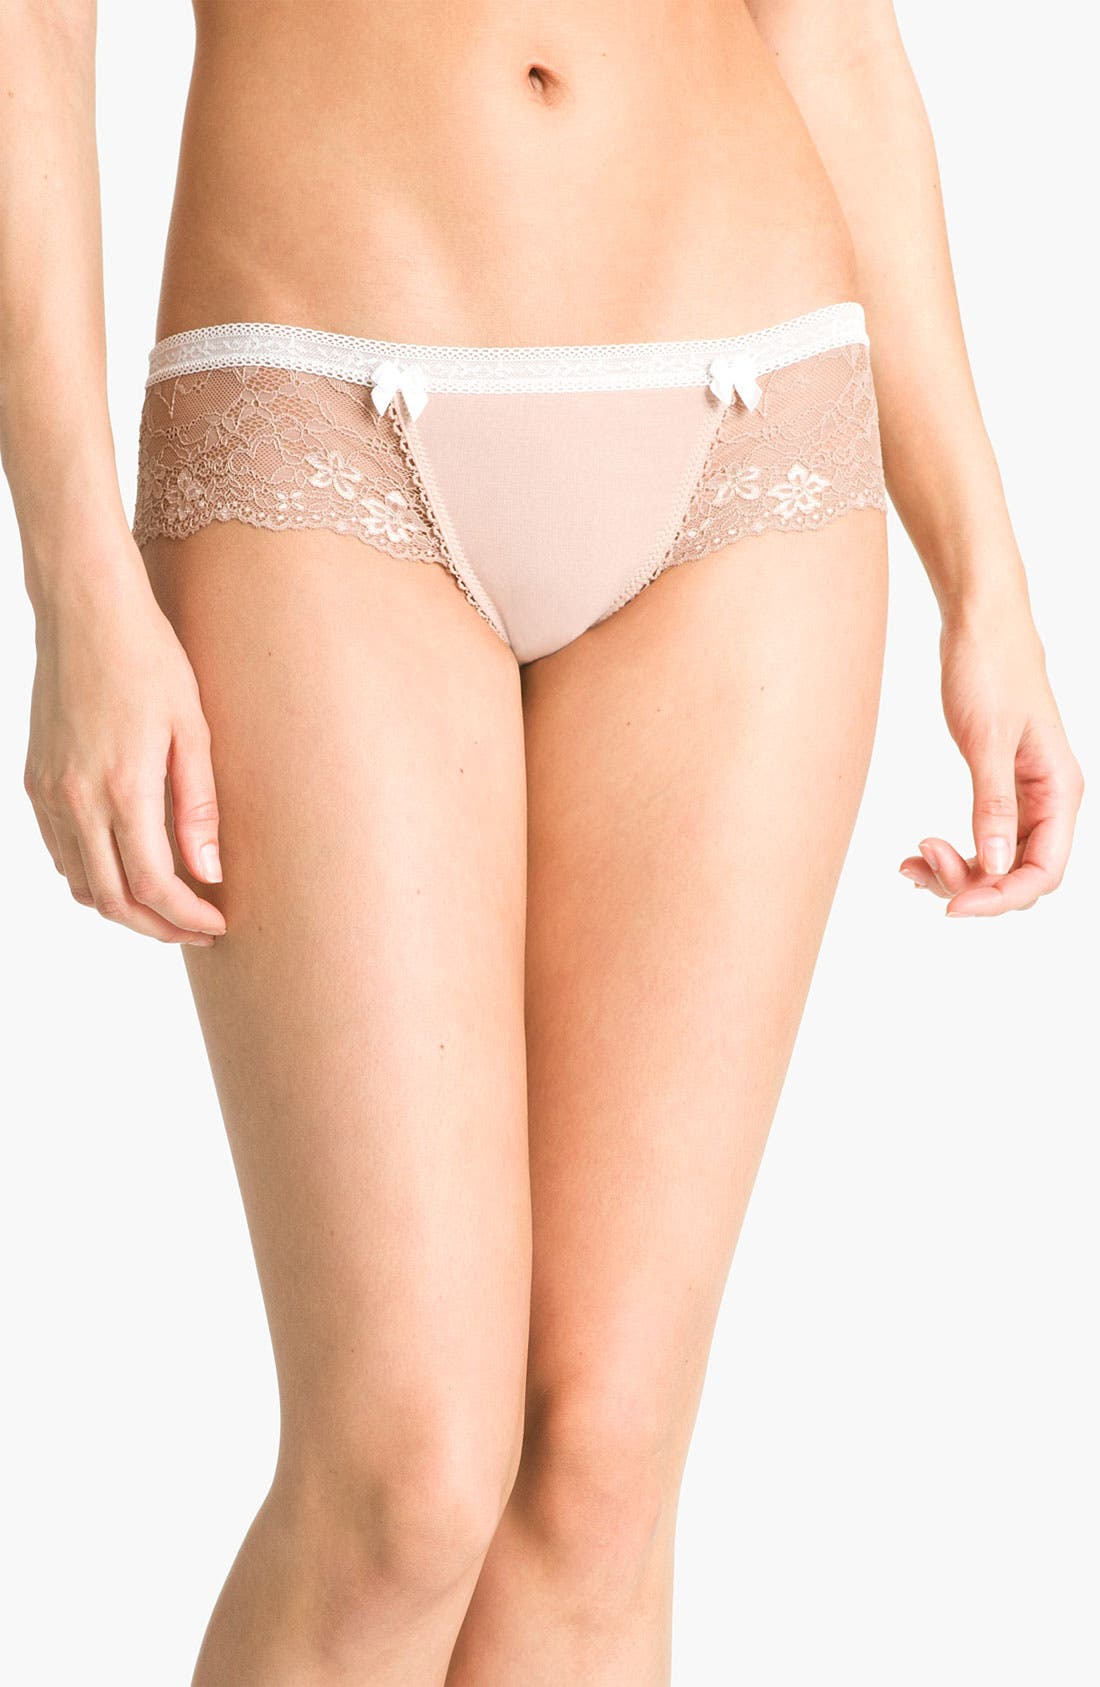 Alternate Image 1 Selected - Honeydew Intimates Lace & Mesh Hipster Panties